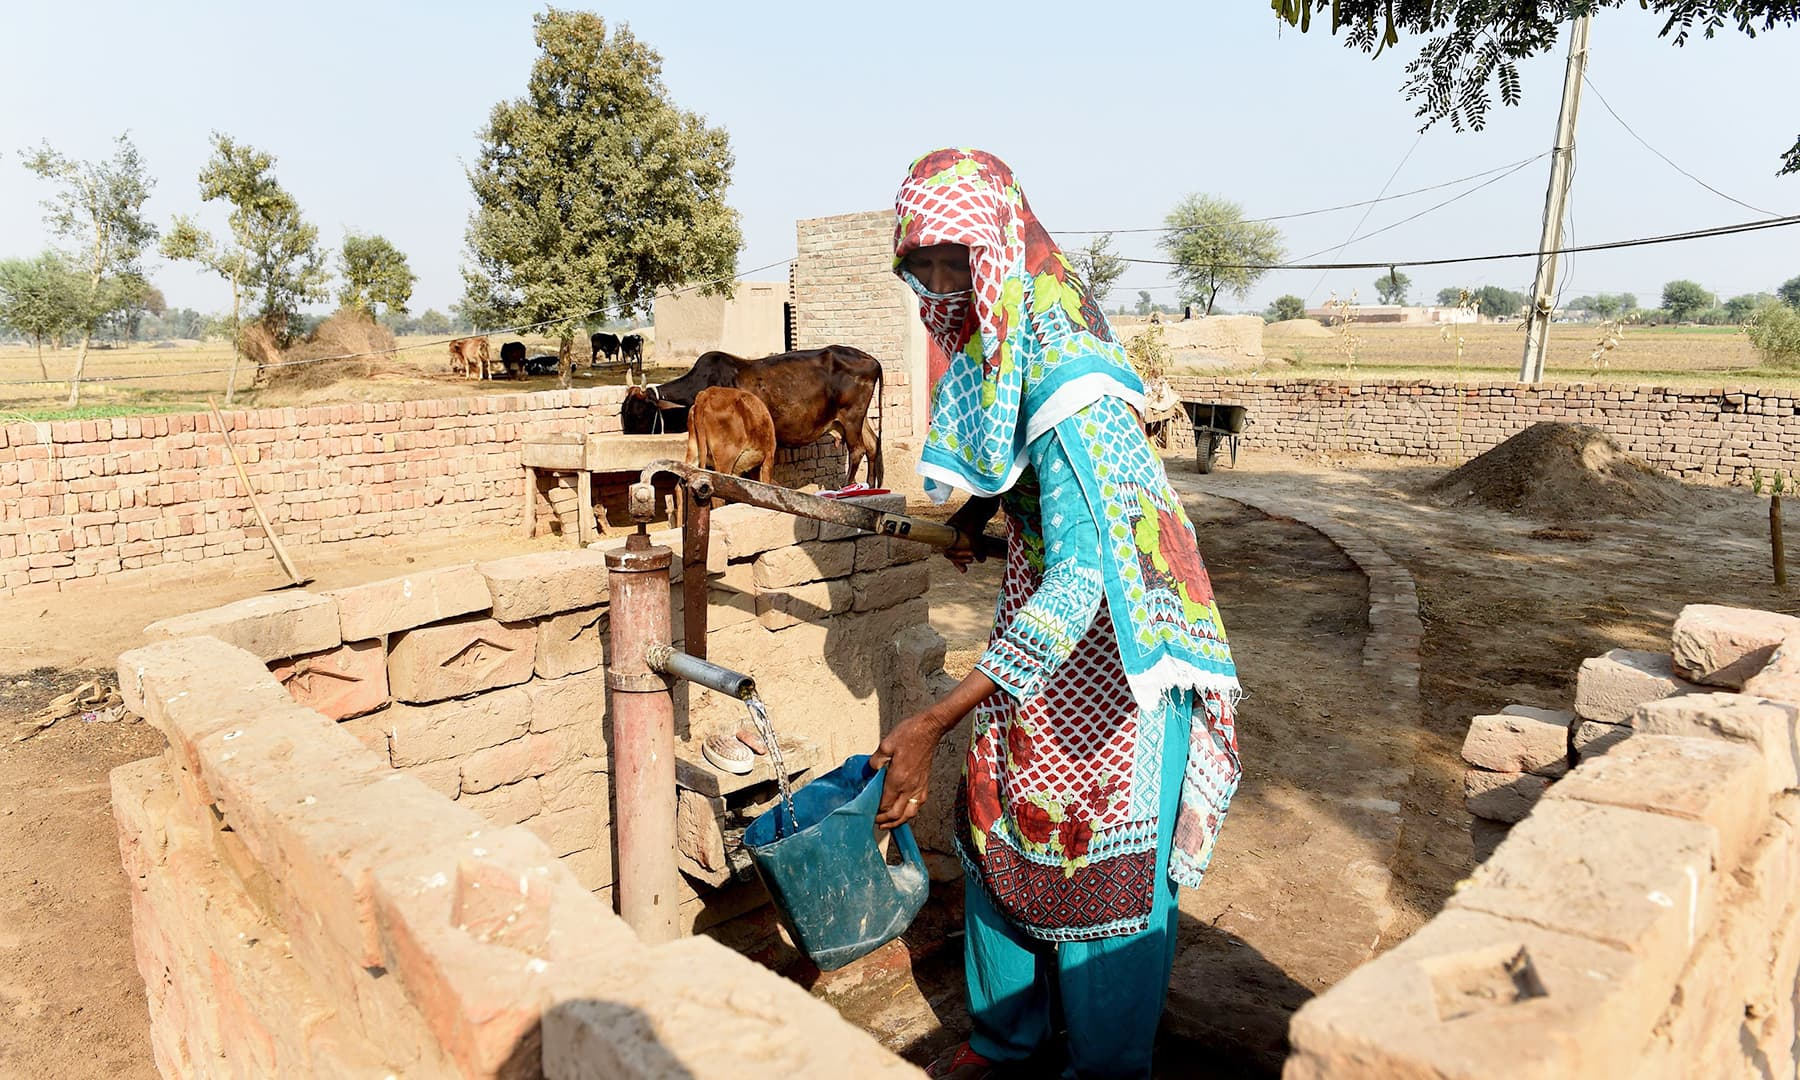 Some 53,000 children die each year from diarrhoea in Pakistan after consuming polluted water. —AFP